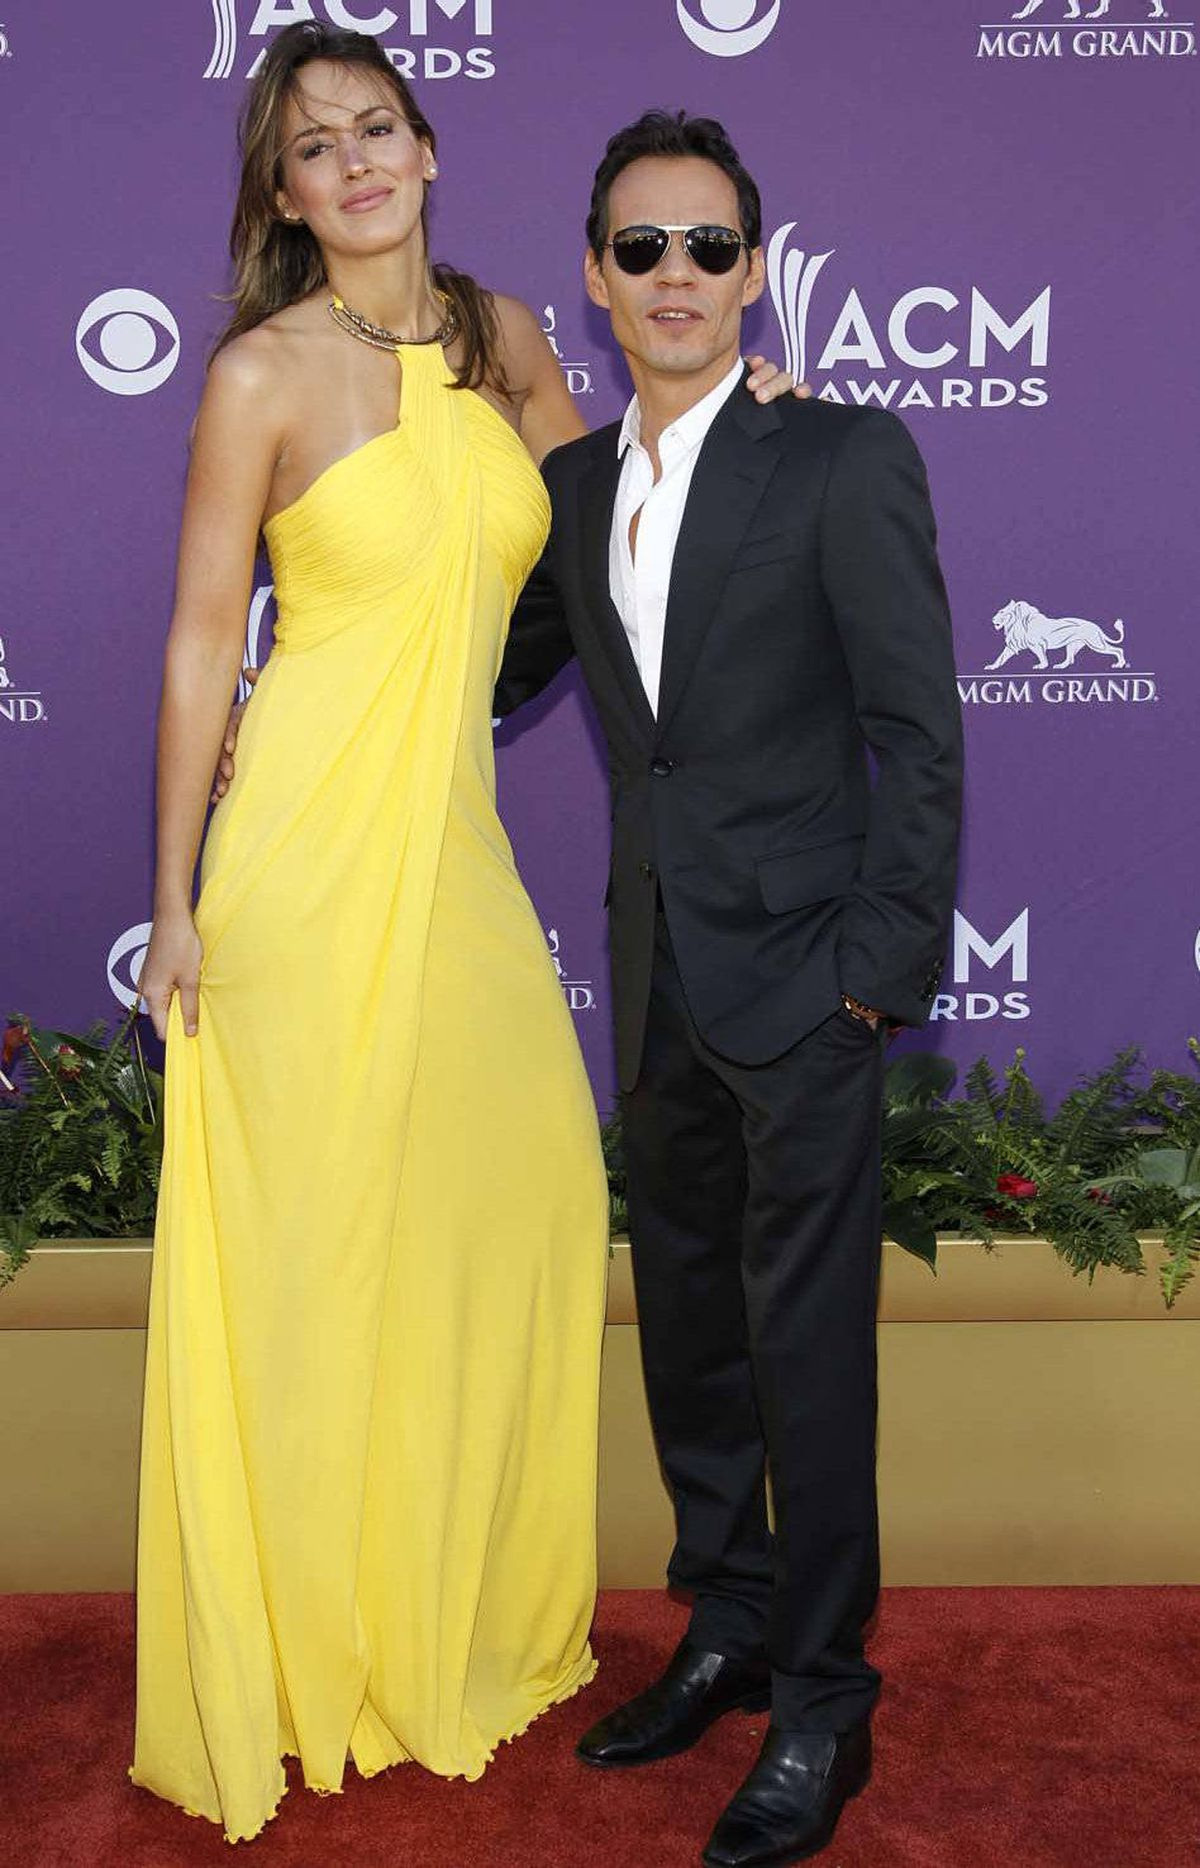 So, Marc Anthony at the Academy of Country Music Awards in Las Vegas on Saturday, how's the single life treating you?